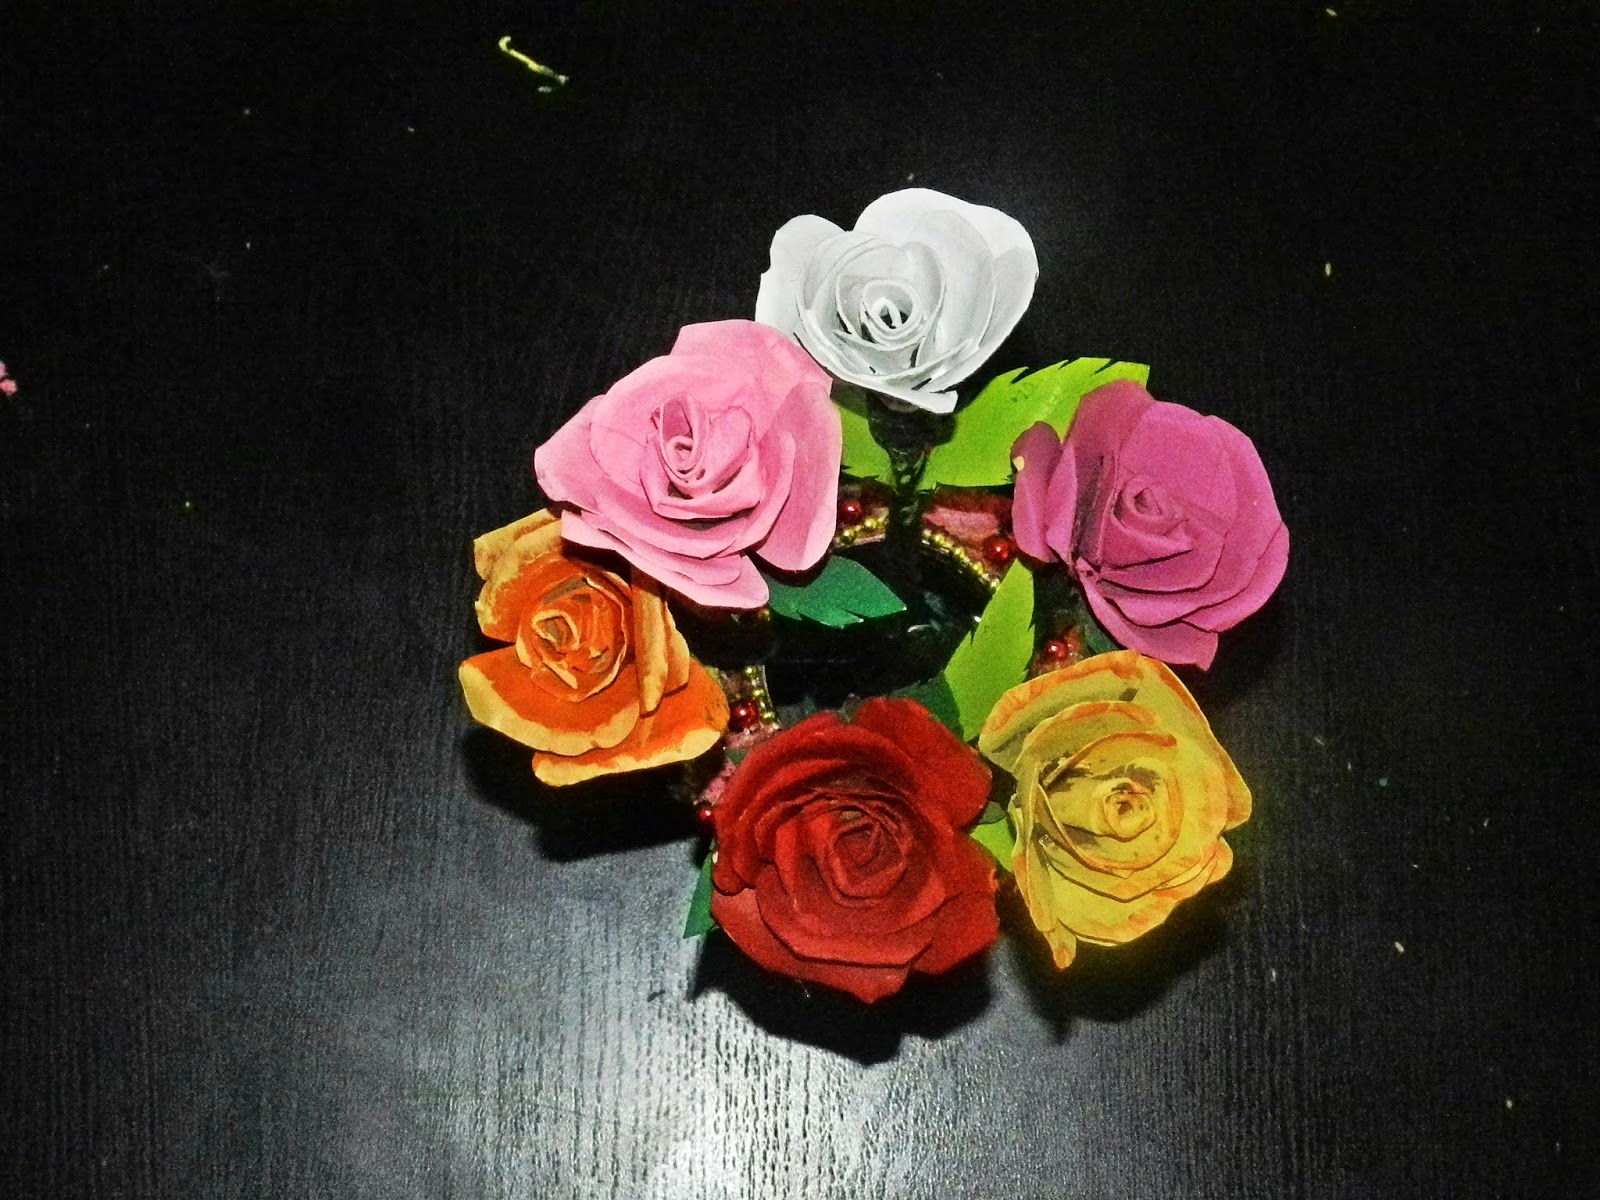 Creative Diy Crafts Recycled Diy Rose Flowers Made With Tissue